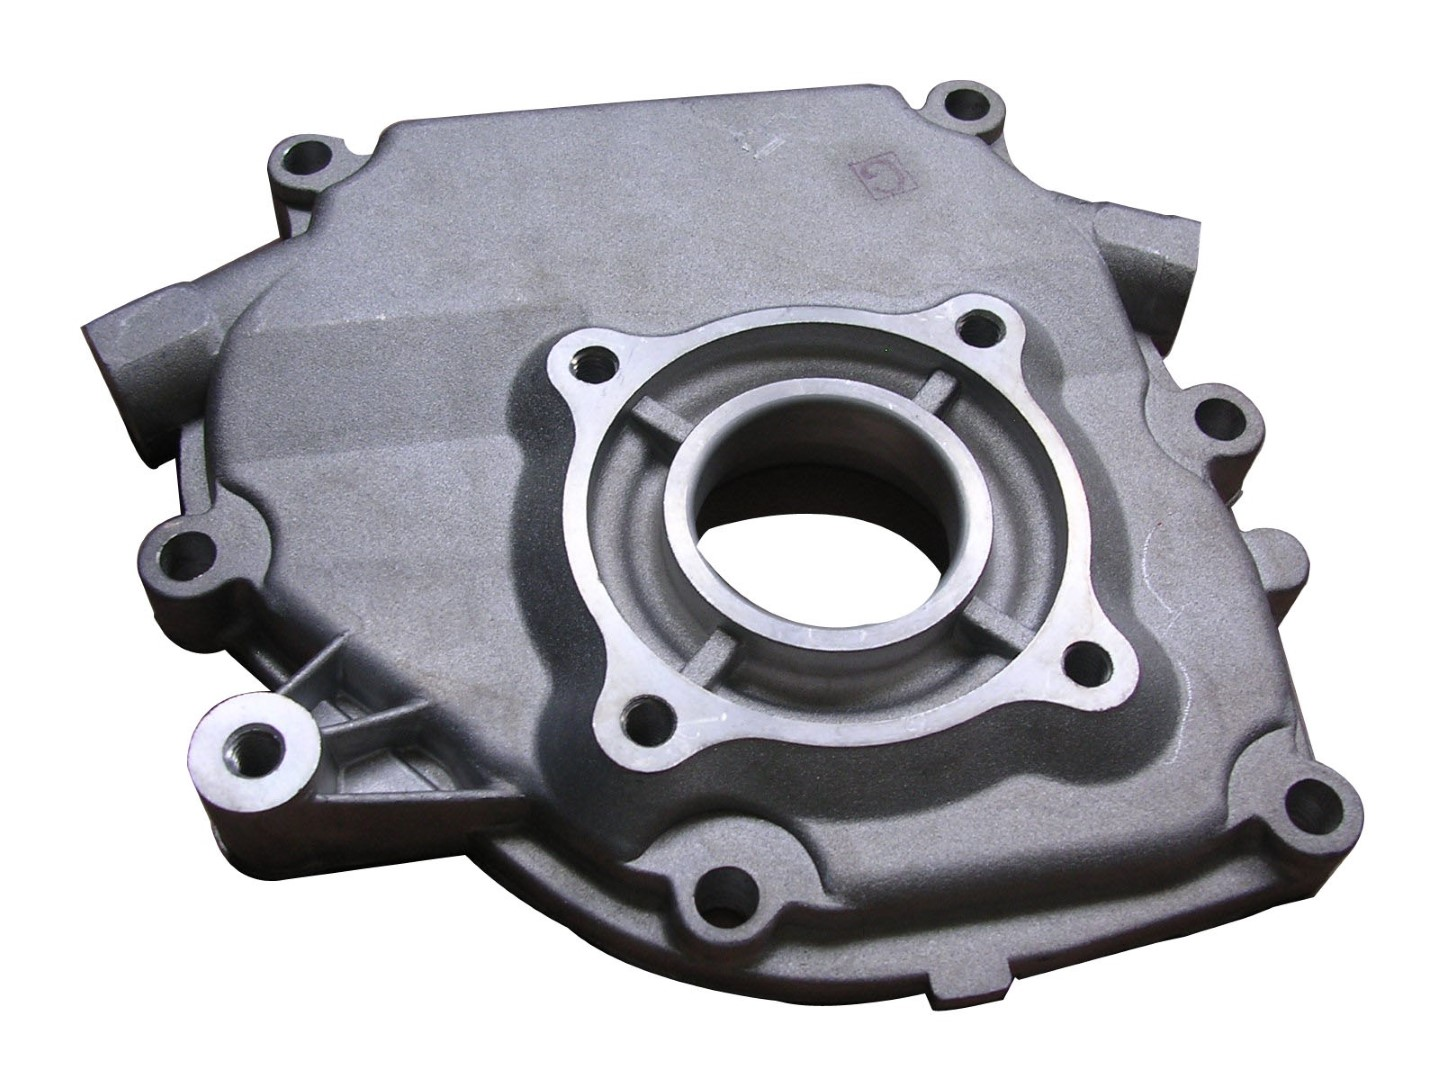 Proven Part GX160-GX200 Crank Case Cover